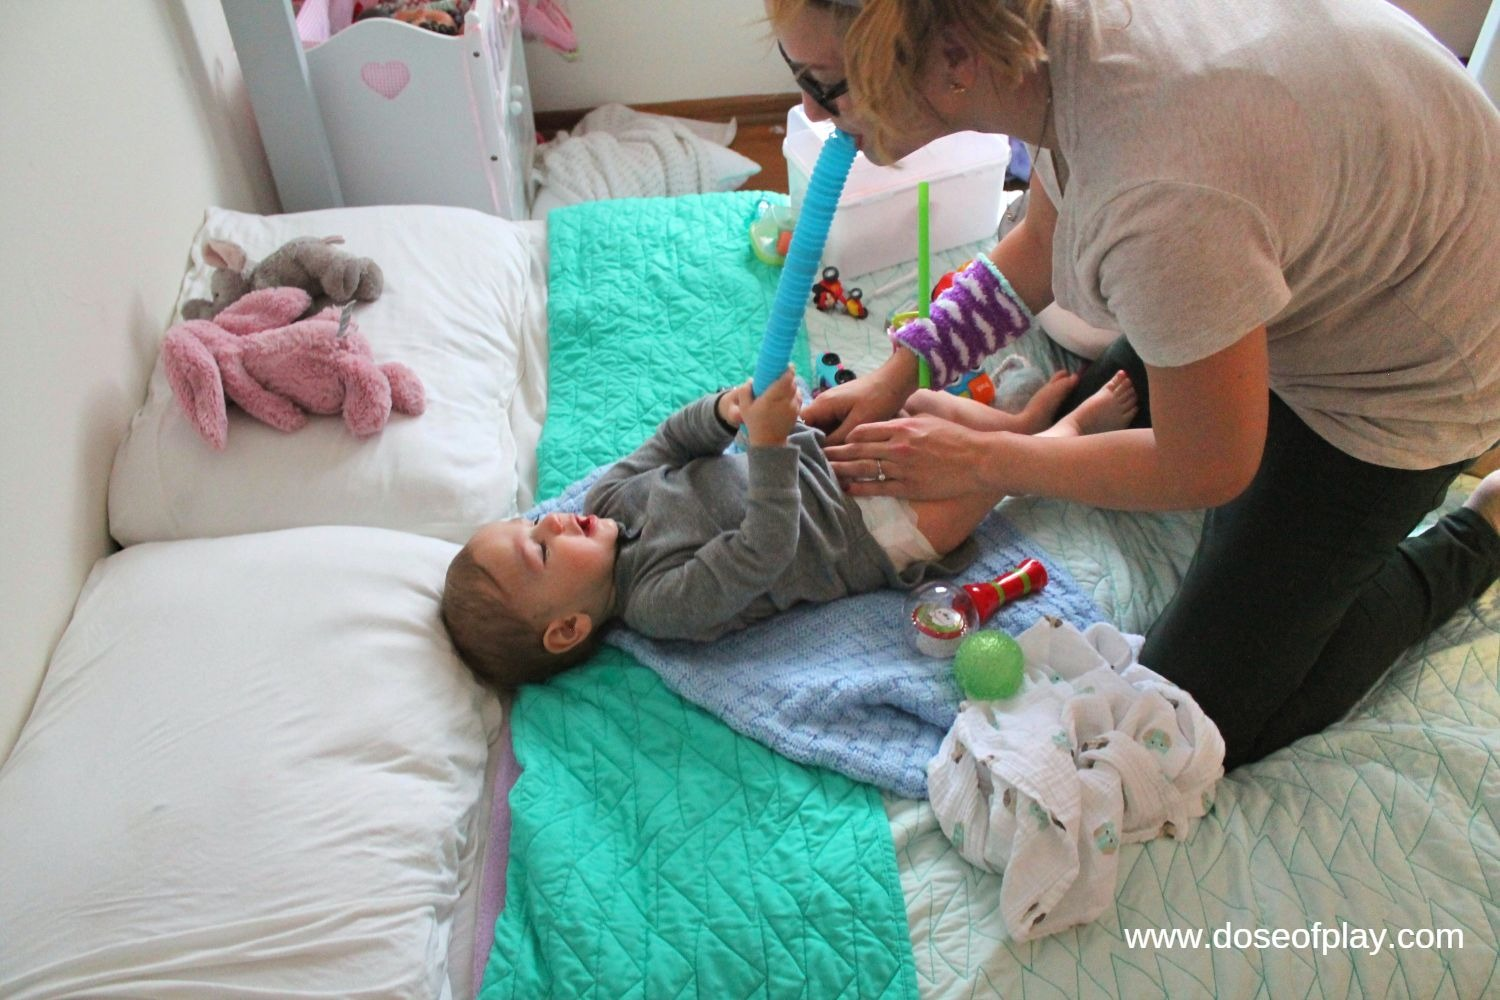 G-tube Button Change Tips for Parents #gtube #tubefeeding #fedisbest #changingthefaceoffed #childlife #childlifespecialist #distractiontips #tubie #tubiesupport #tubieideas